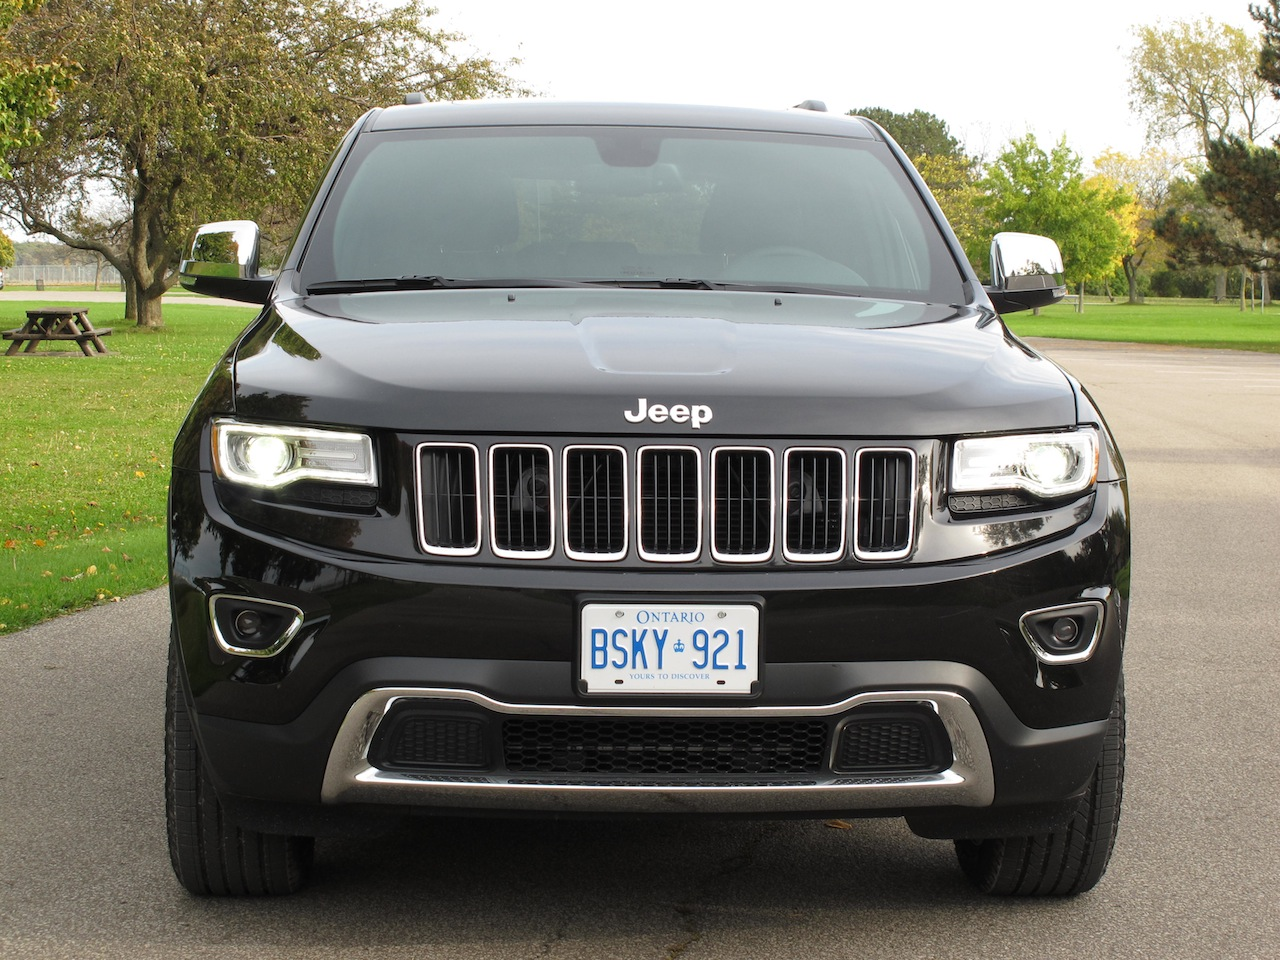 2014 jeep grand cherokee review ratings specs prices autos post. Black Bedroom Furniture Sets. Home Design Ideas